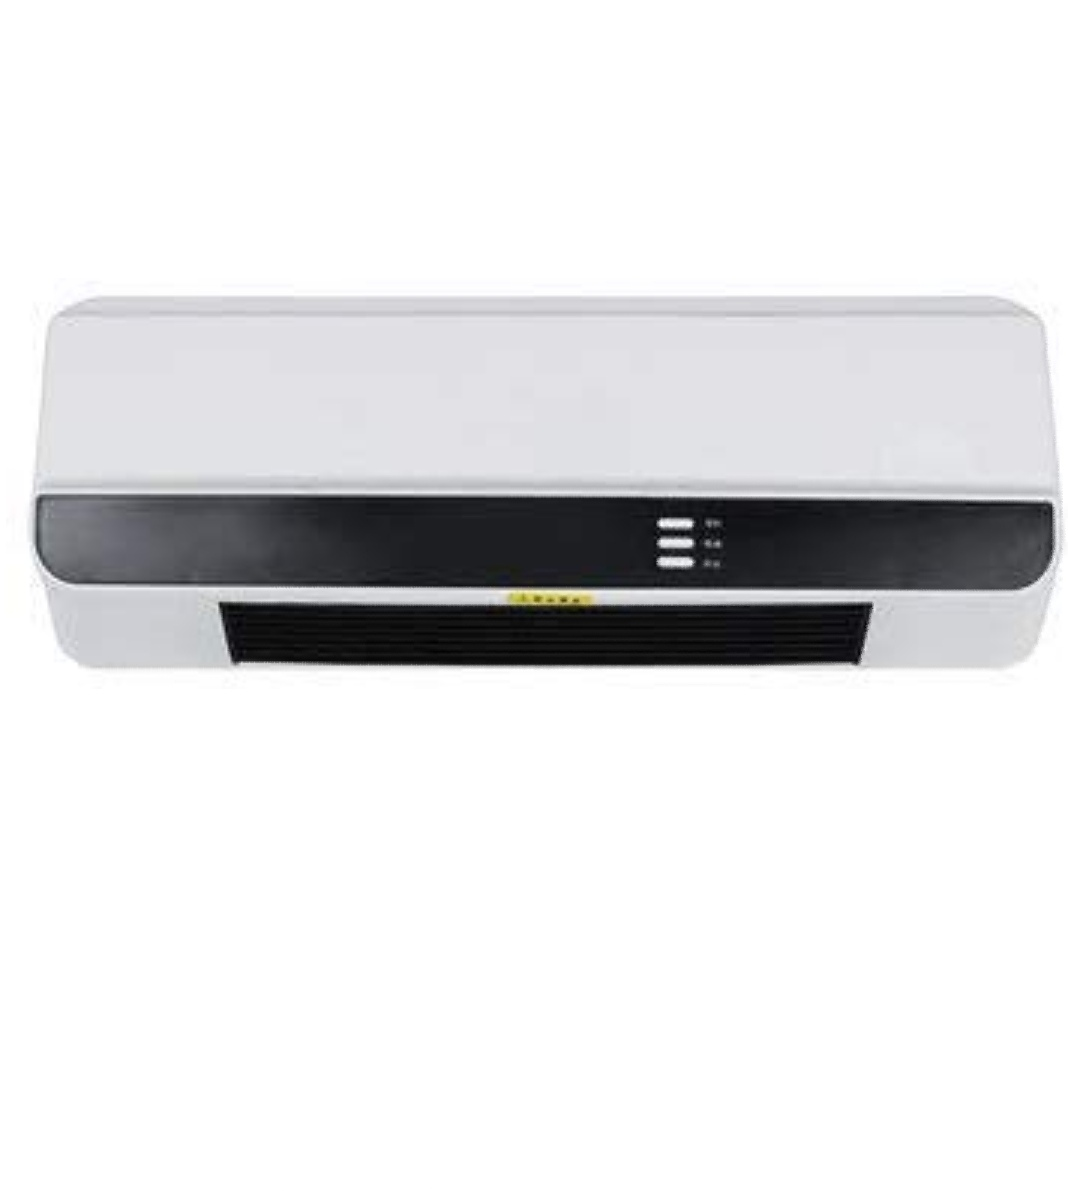 Intelligent Frequency Conversion Fast Wall Hanging Air Conditioner for Bedroom Airconditioning